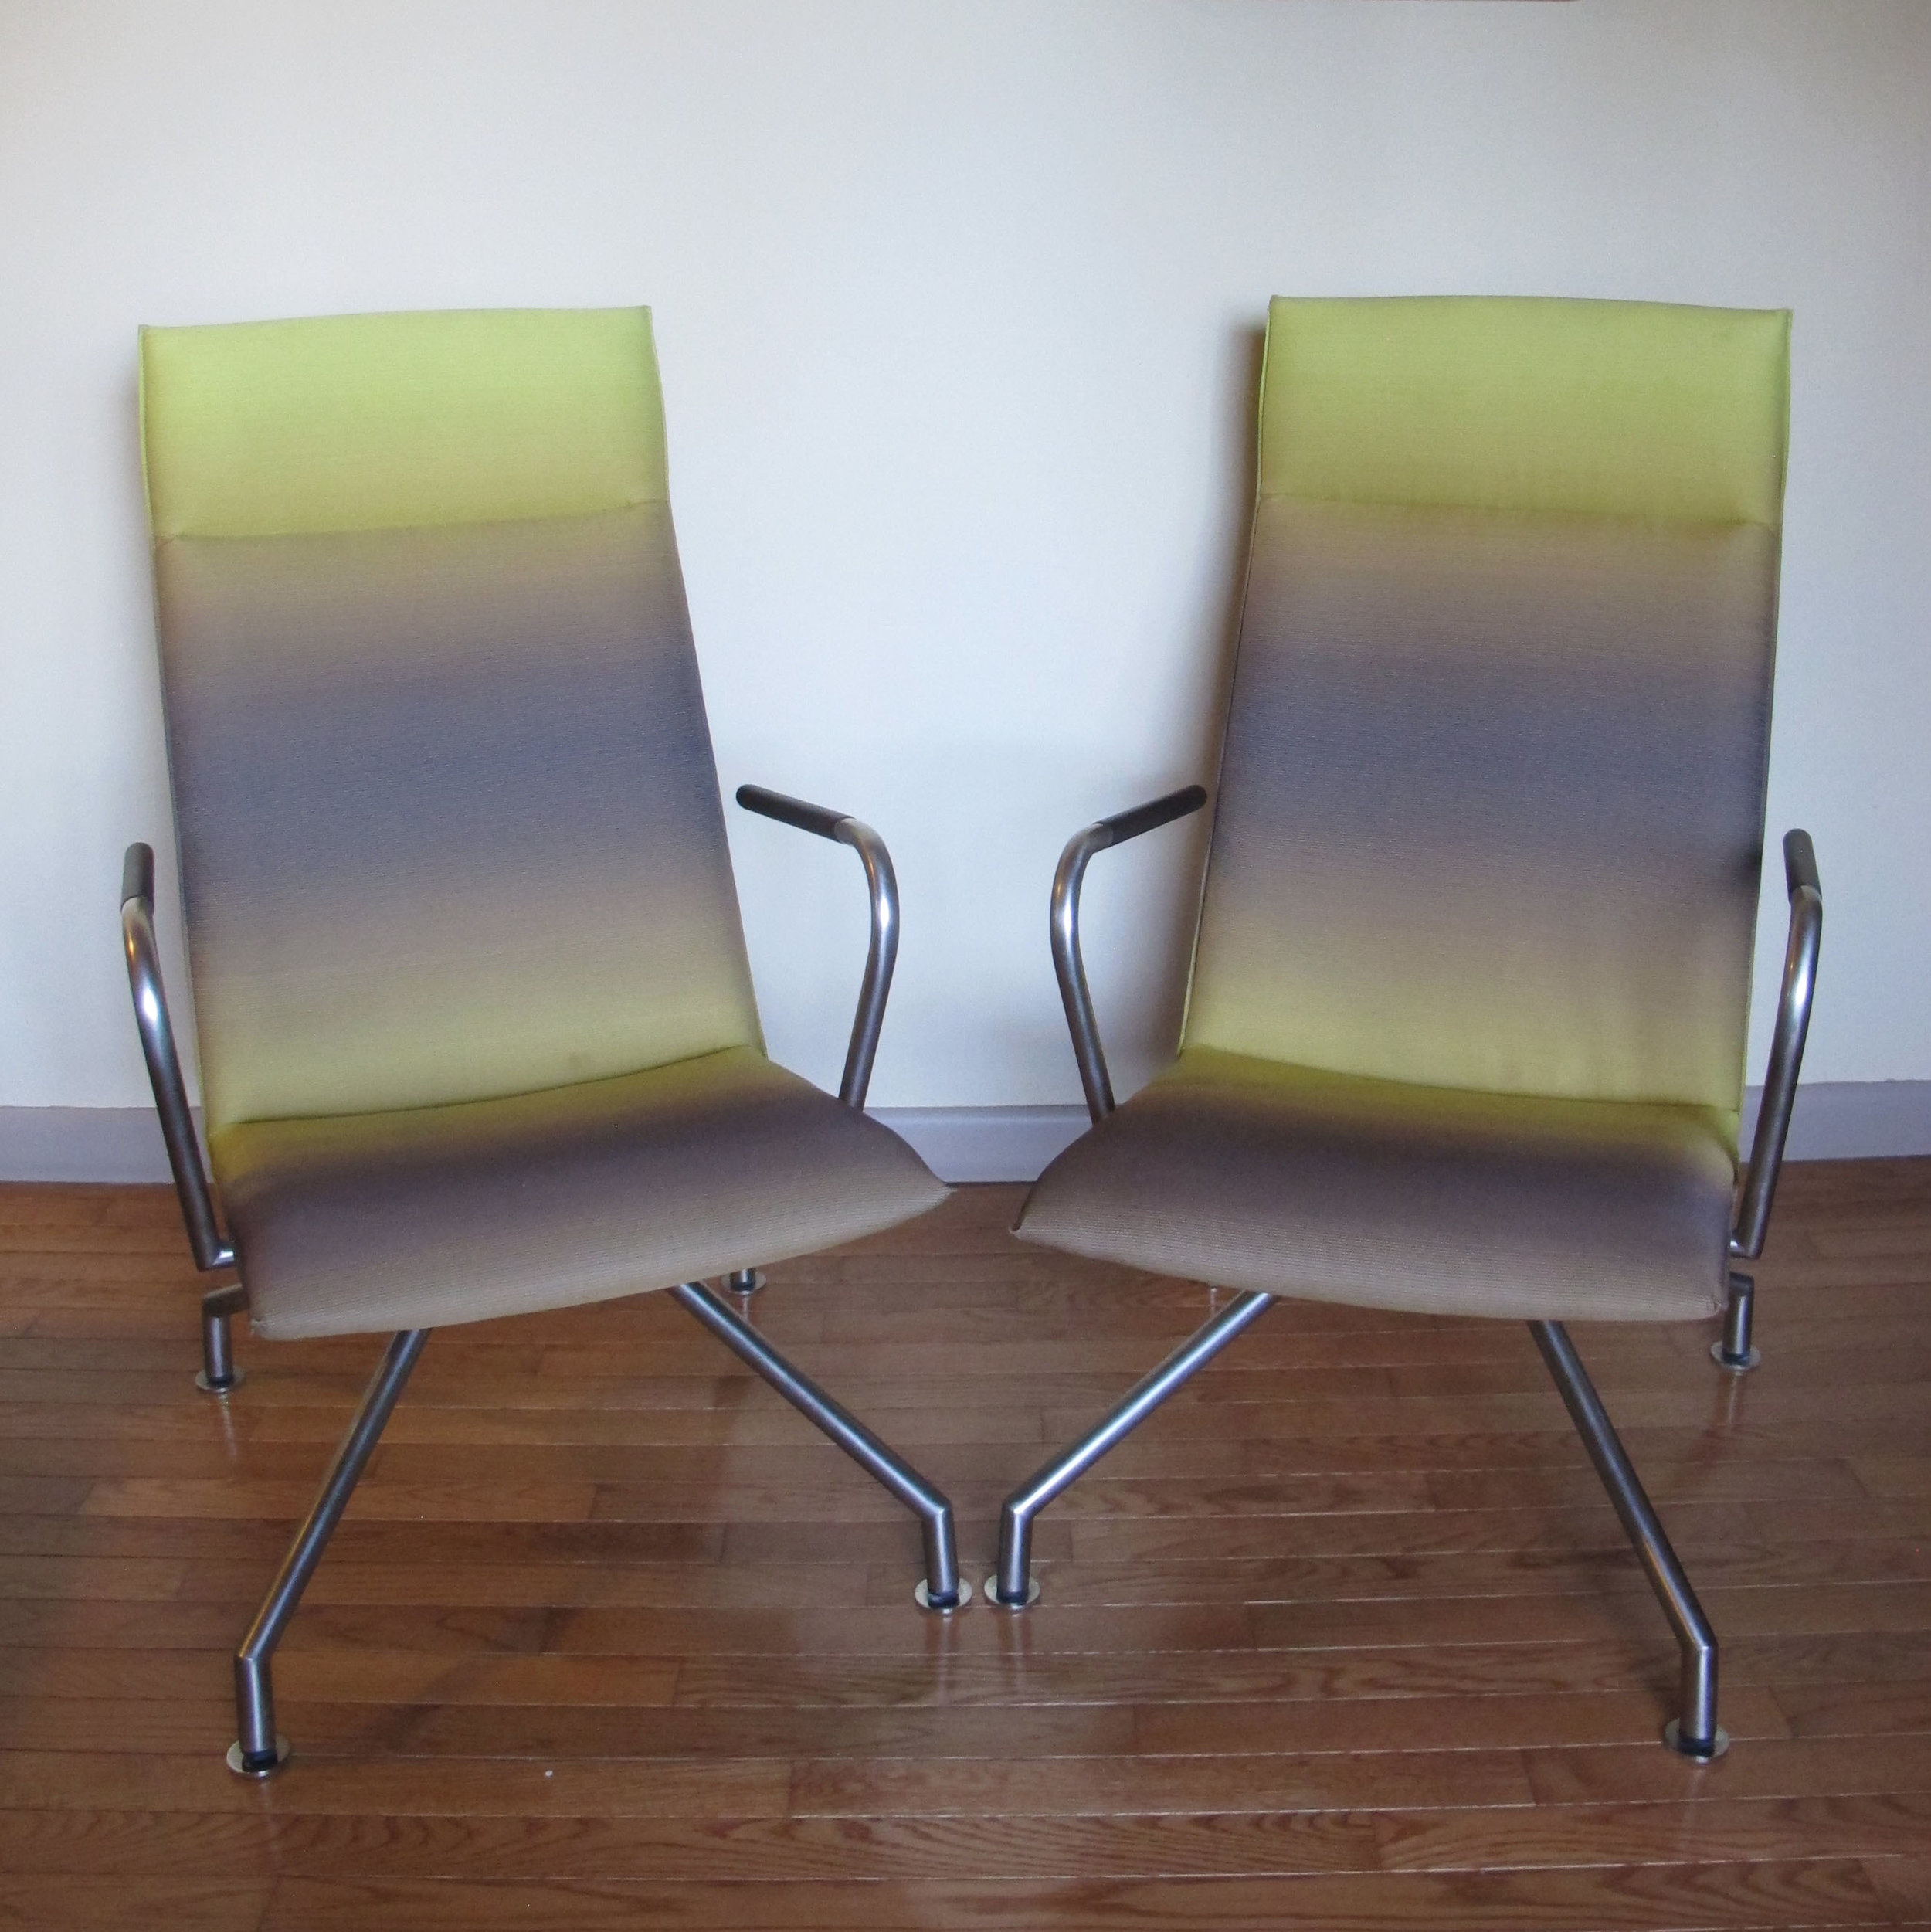 PAIR OF BURKHARD VOGTHERR HIGH BACK MIKADO LOUNGE CHAIRS BY DAVIS